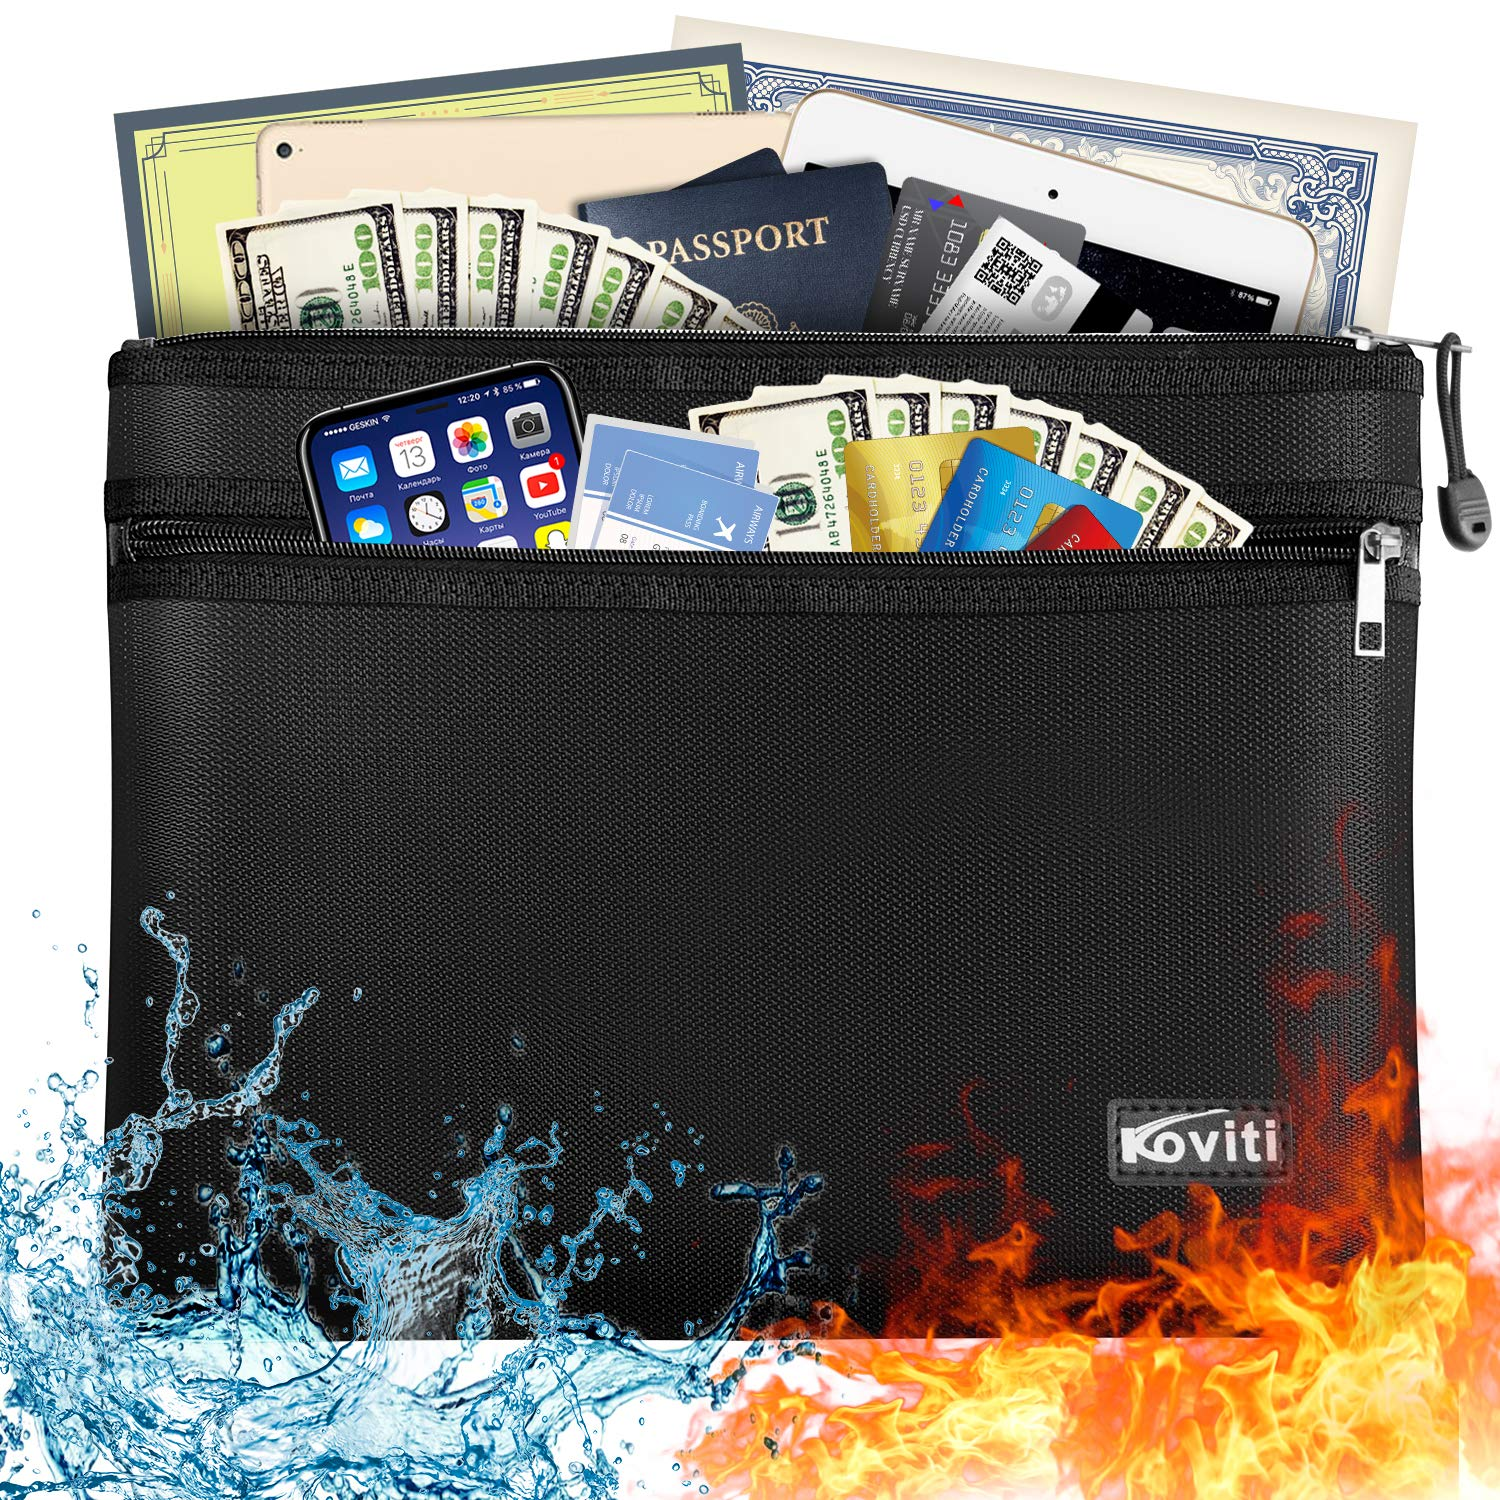 """Large Fireproof Document Bag with Two Pockets Two Zippers, 13.7""""x 9.8"""" Water Resistant Fireproof Pouch, Fireproof Safe Storage Money Bag for A4 Document Holder,Cash,File,Tablet,Passport and Valuables"""